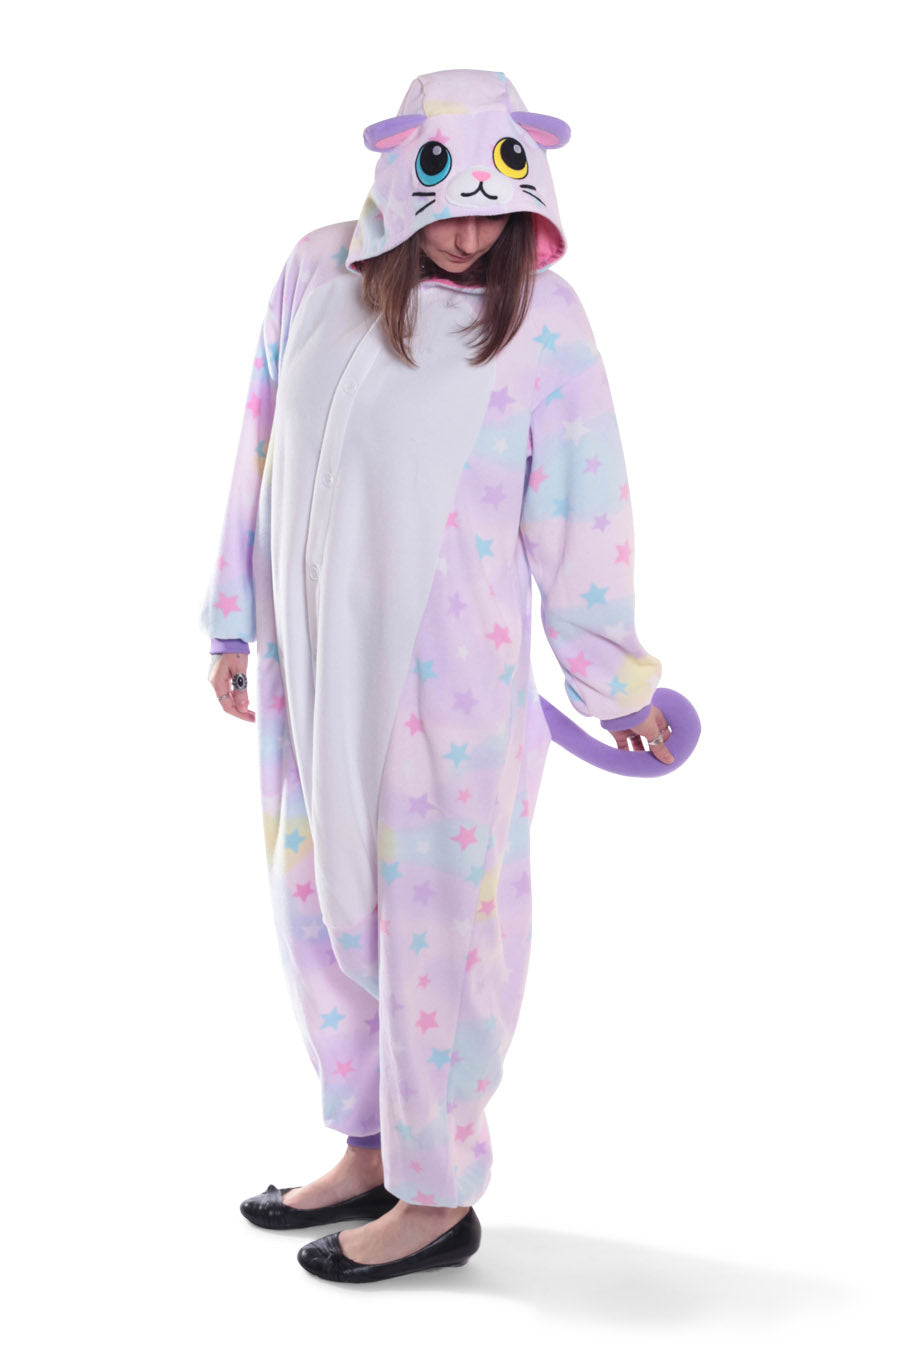 Pastel Dream Cat X-Tall Kigurumi Adult Onesie Costume Pajamas Animal Stars Main